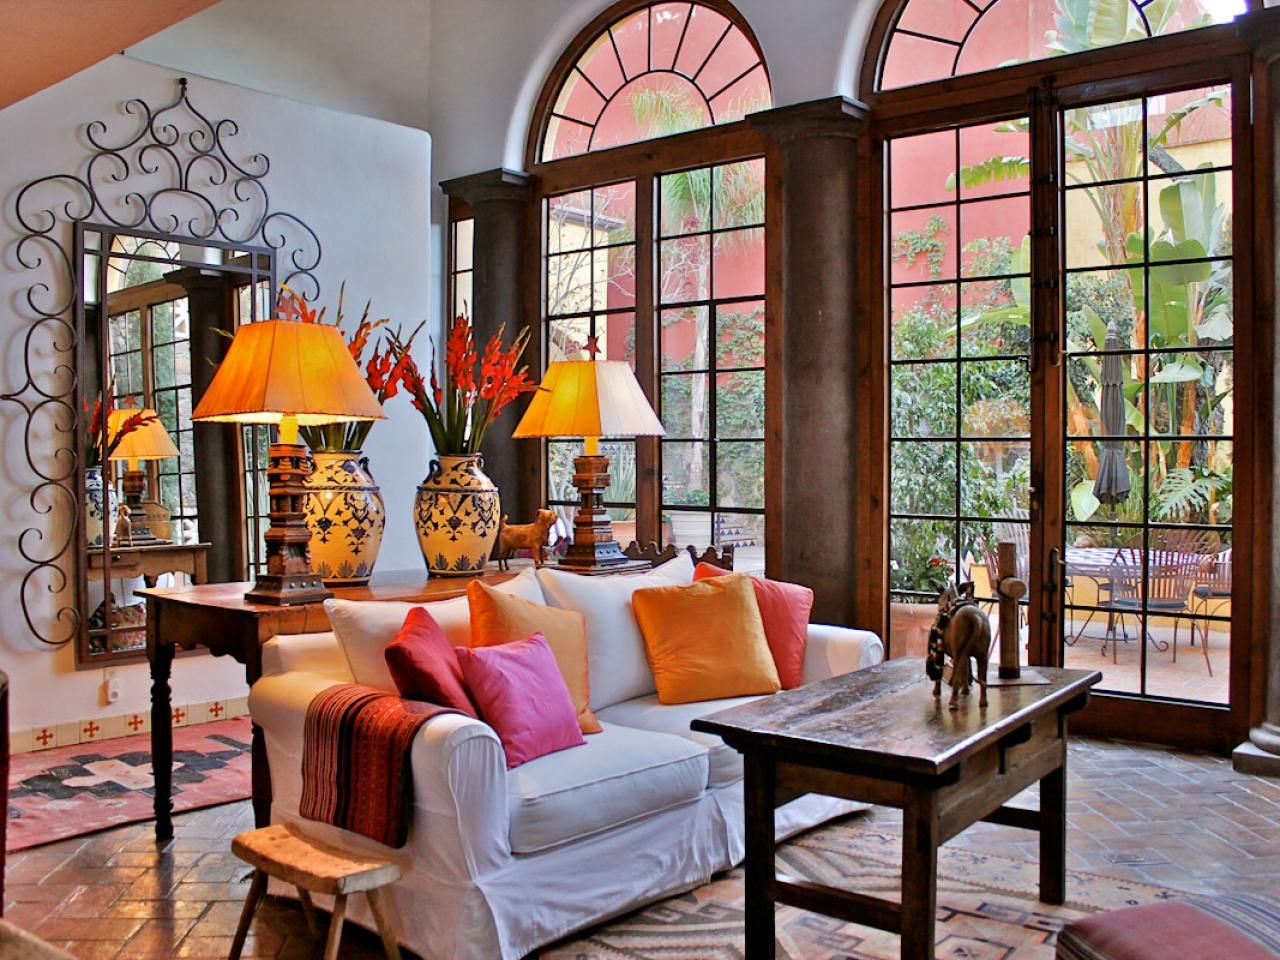 10 Spanish Inspired Rooms | Interior Design Styles And Color Schemes For  Home Decorating | HGTV